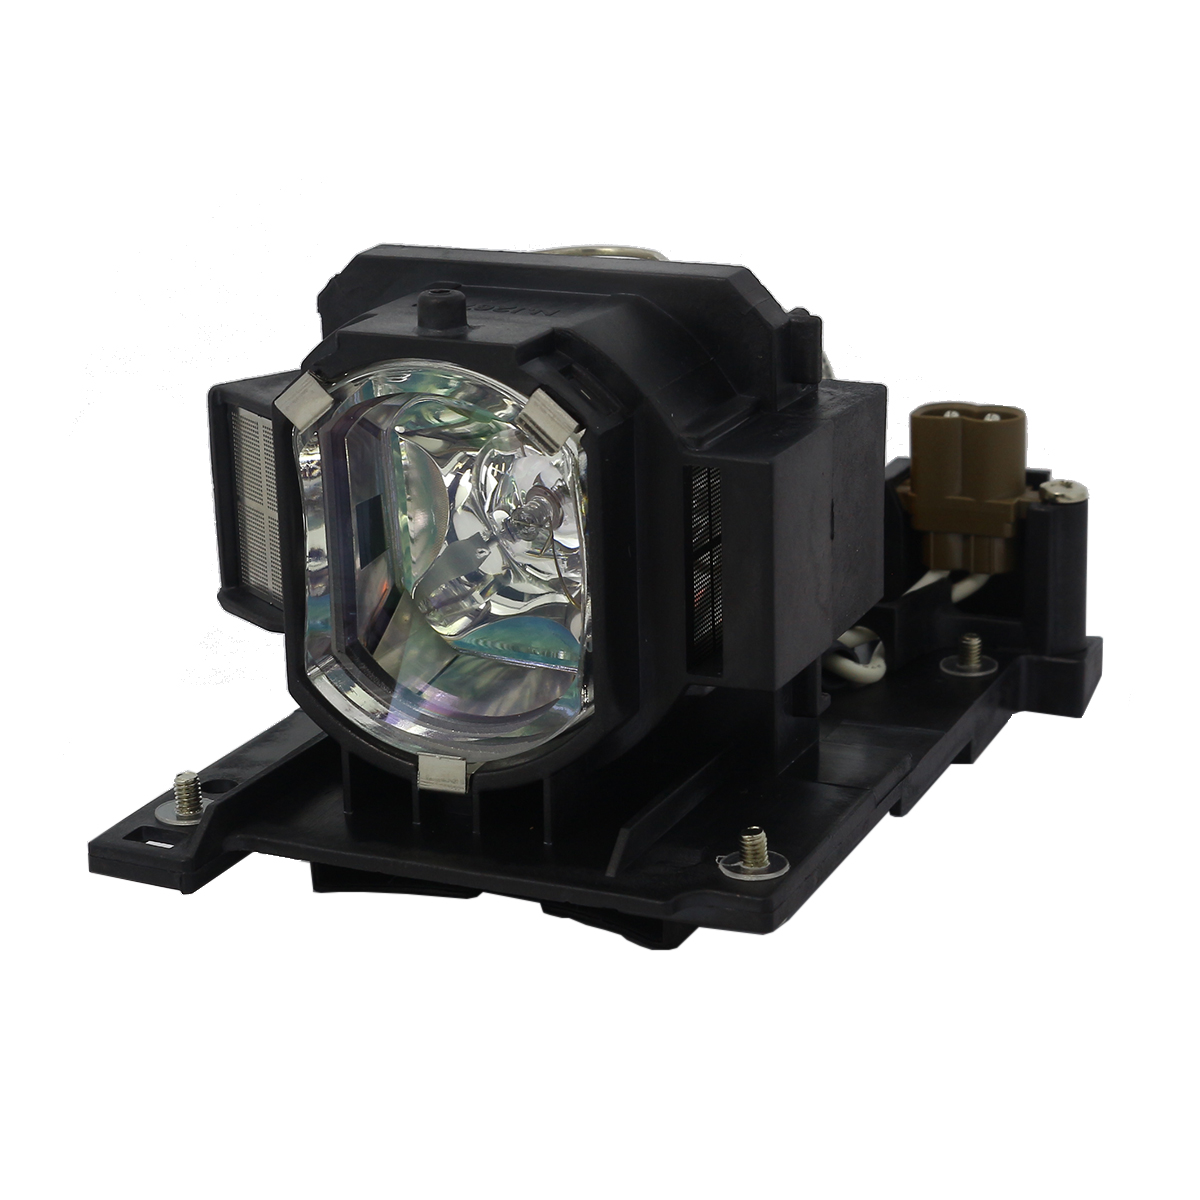 Lutema Economy Bulb for Dukane ImagePro 8924HW-RJ Projector (Lamp Only) - image 5 of 5